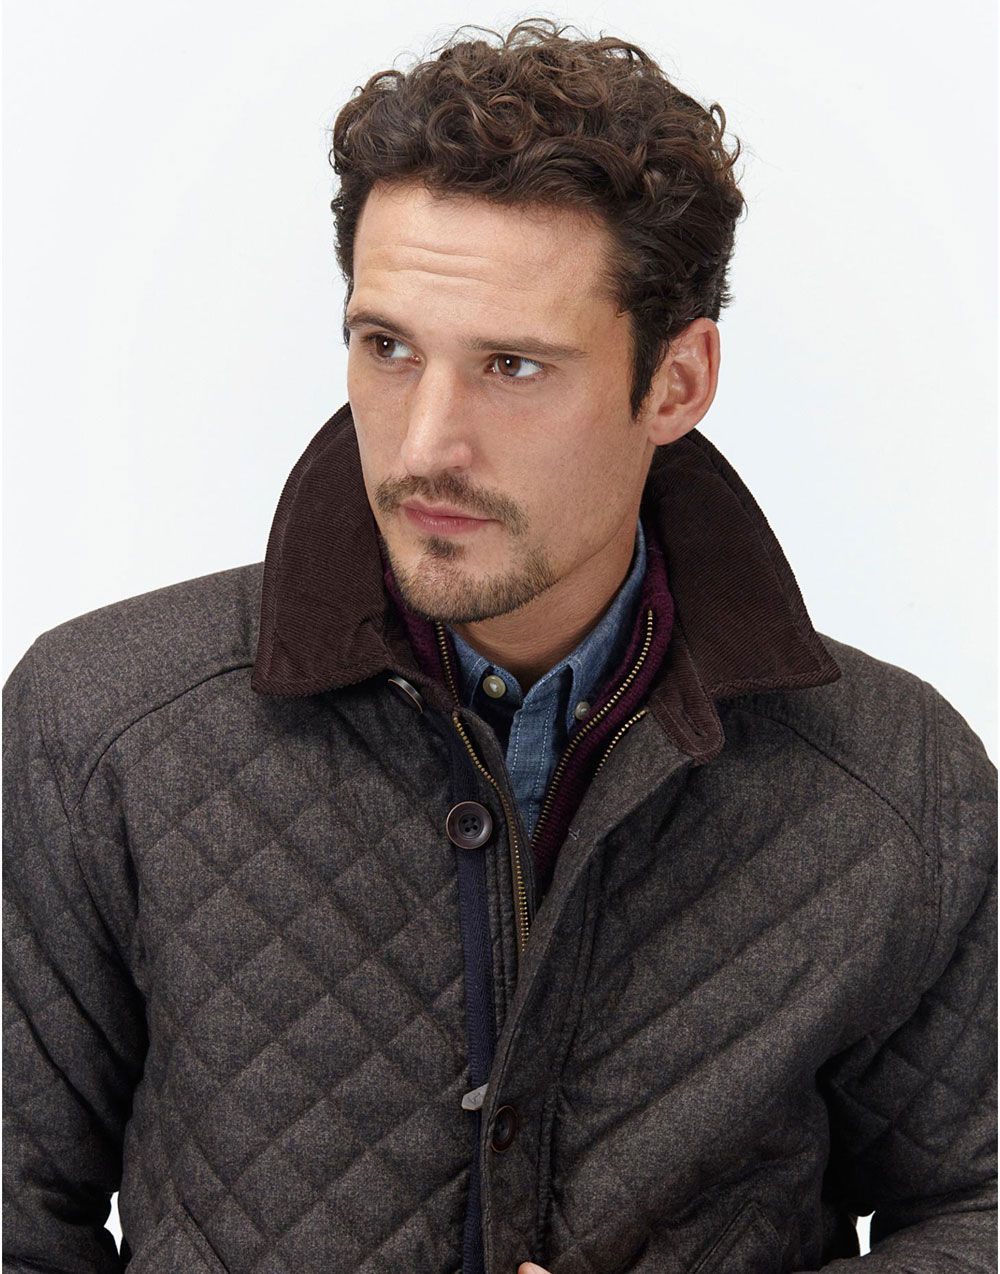 Discover the range of quilted jackets for men at ASOS. Shop our collection of padded and puffer jackets in formal and casual styles today. your browser is not supported. River Island teddy Puffer in brown borg. $ The North Face Nuptse Jacket in Purple. $ New Look hooded puffer jacket in gray. $ COLLUSION reversible.